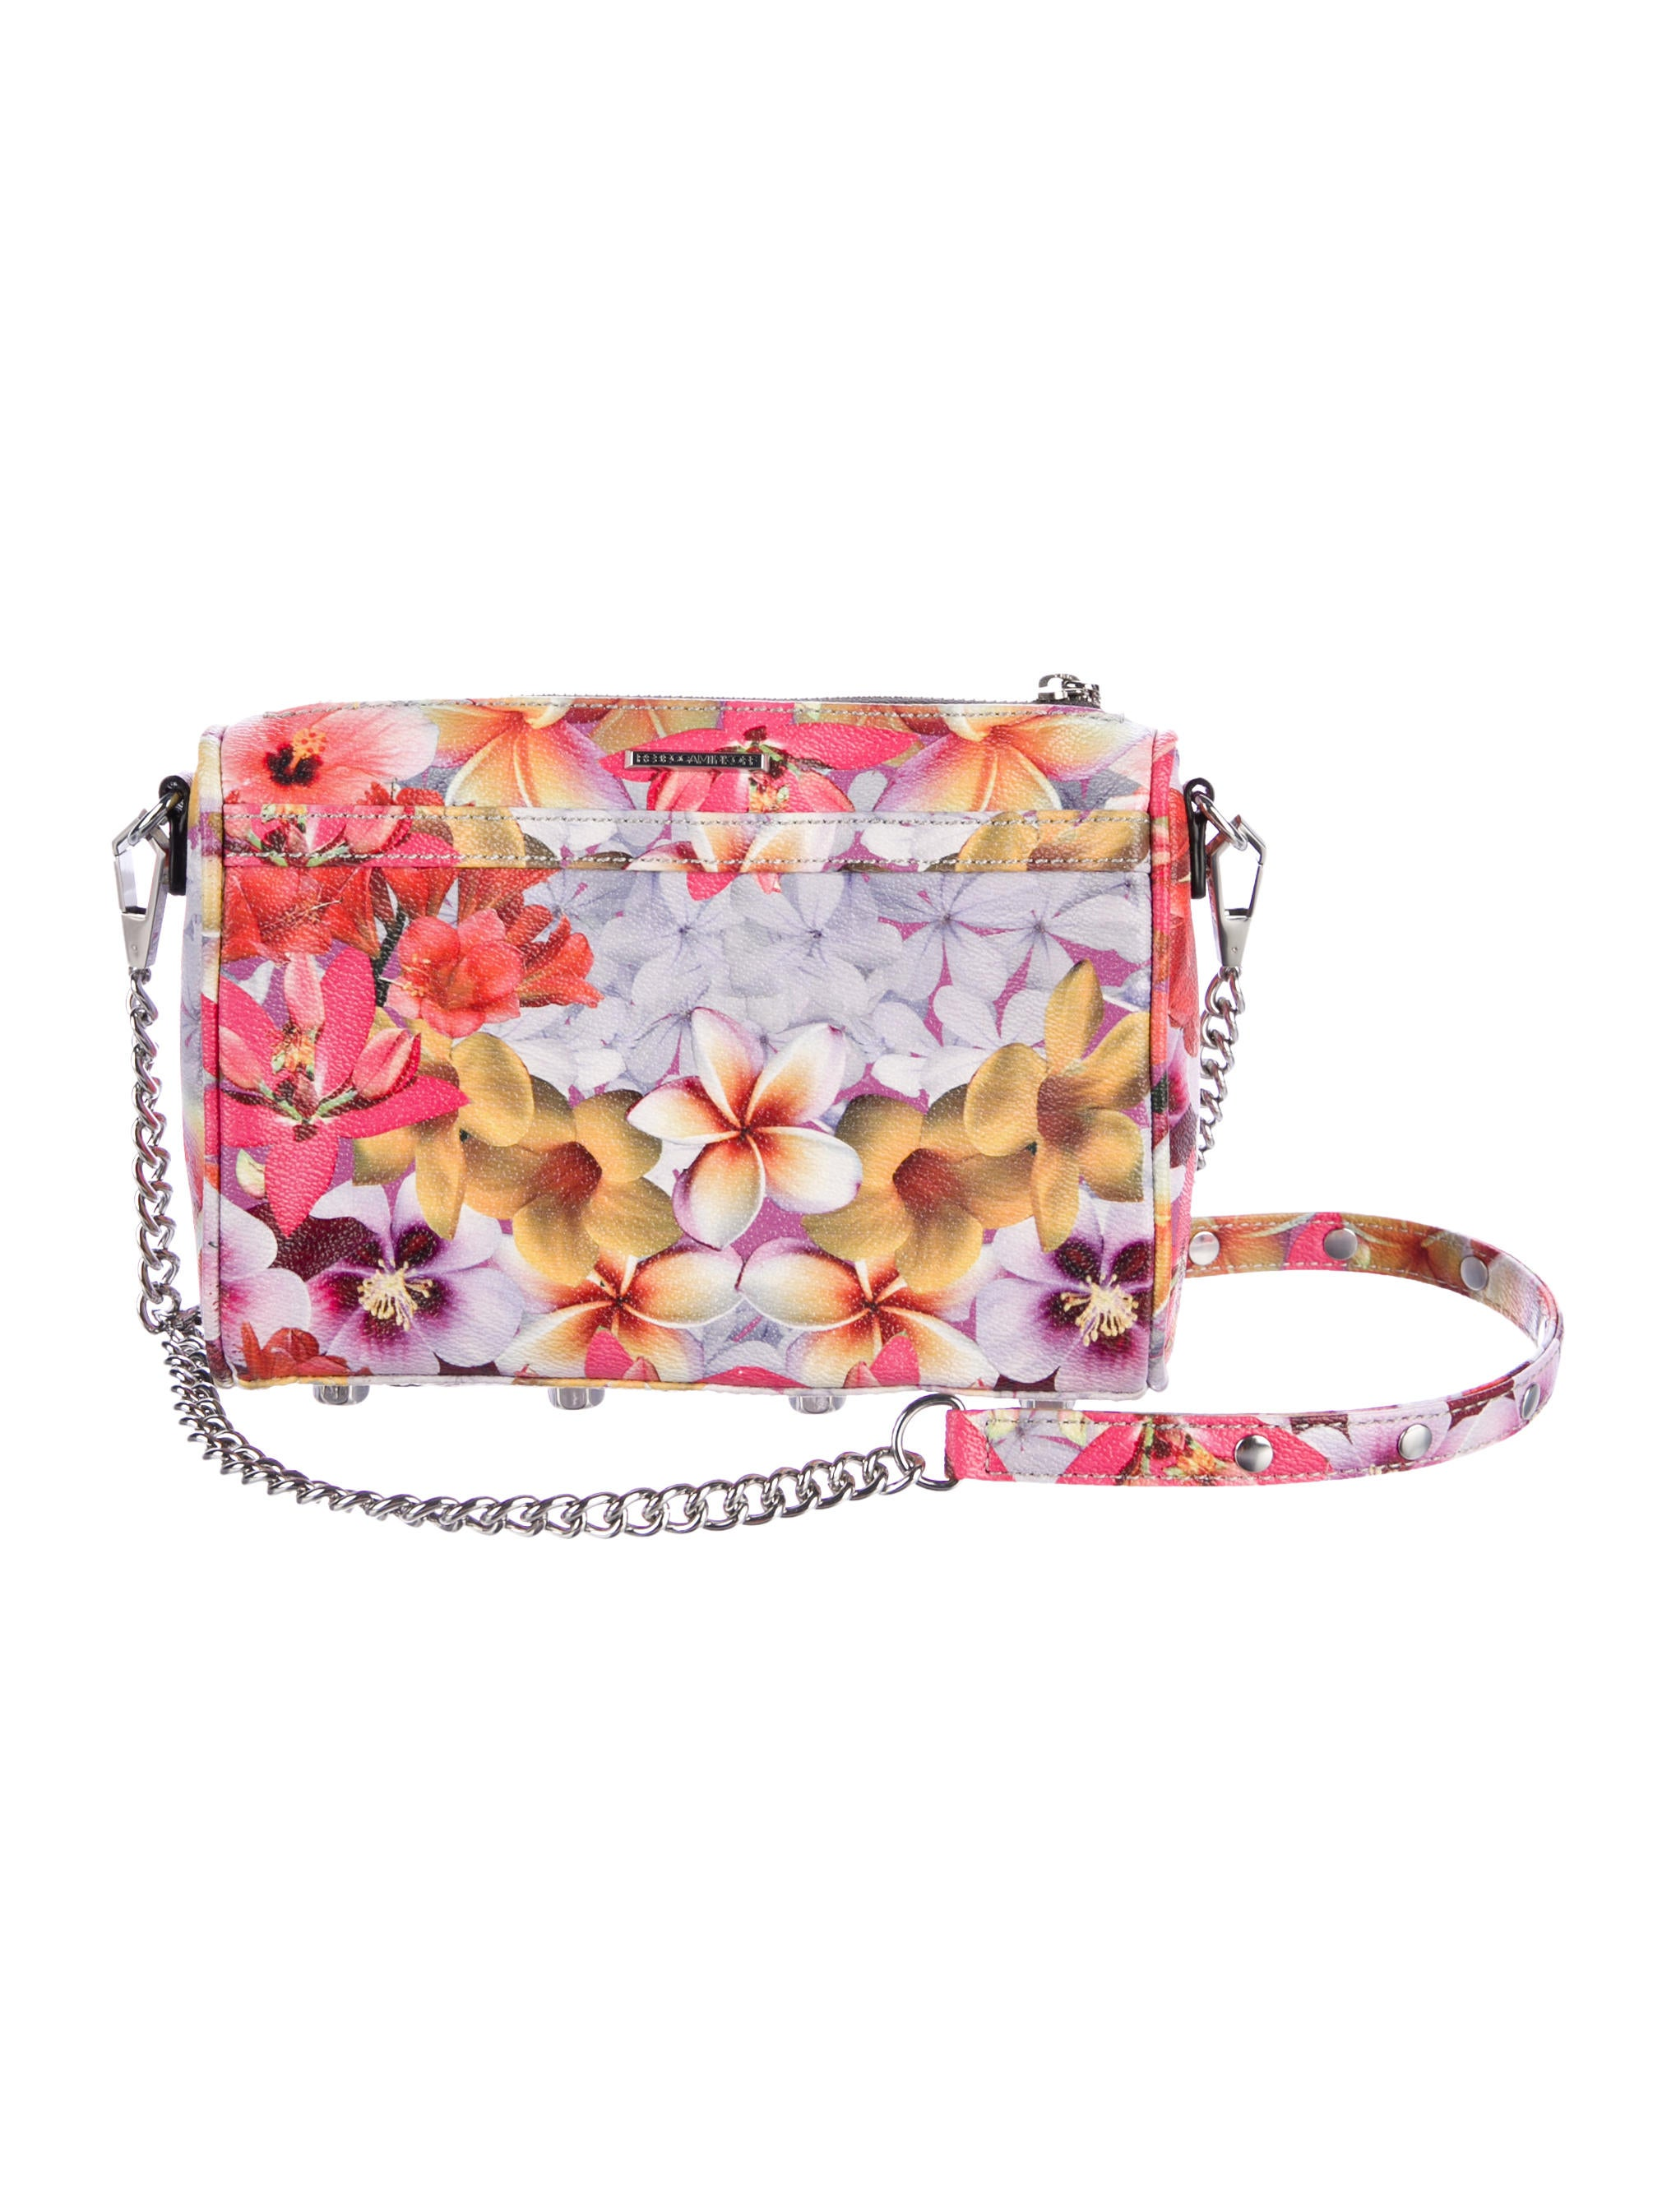 Rebecca Minkoff Floral Printed MAC Crossbody Bag - Handbags - WRM32190 | The RealReal